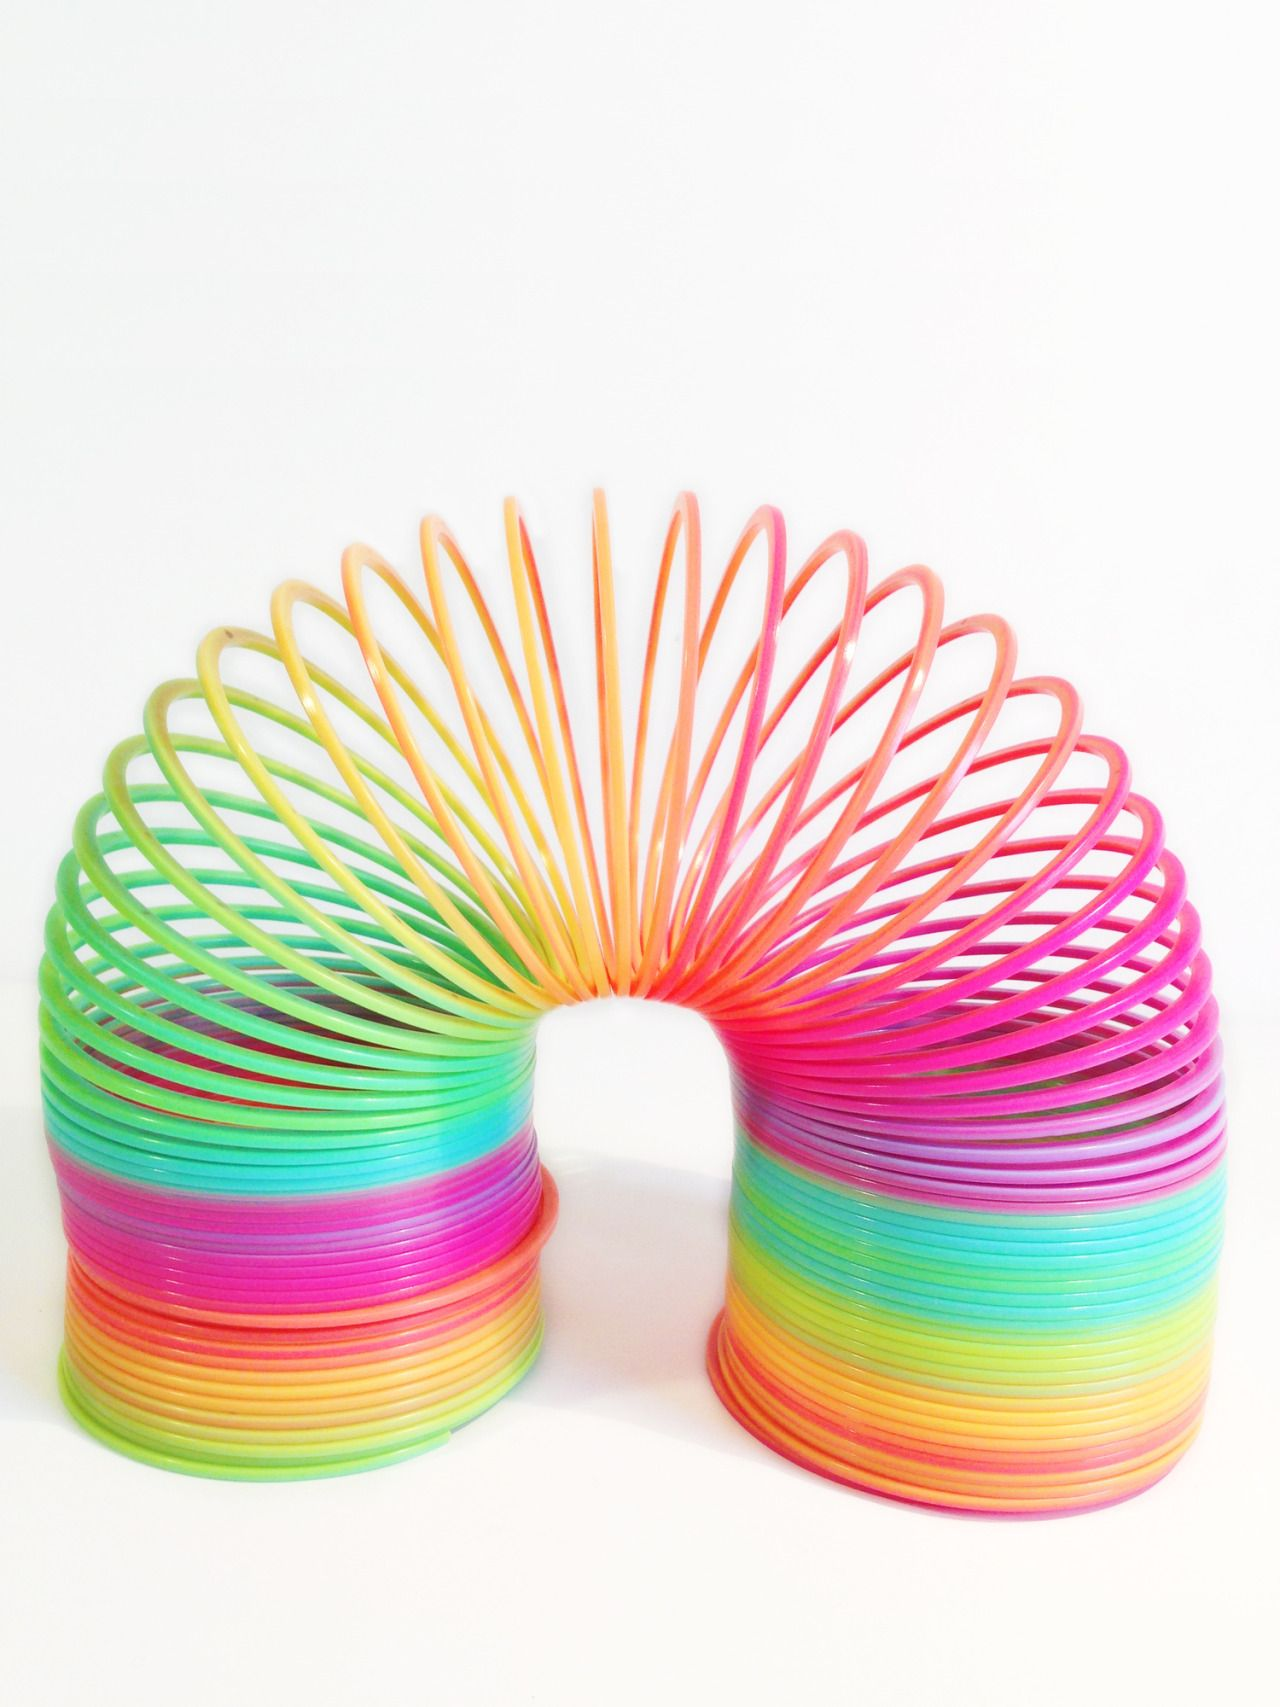 That90Stoy Blog Everyone Loves A Slinky, You Gotta Get A Slinky